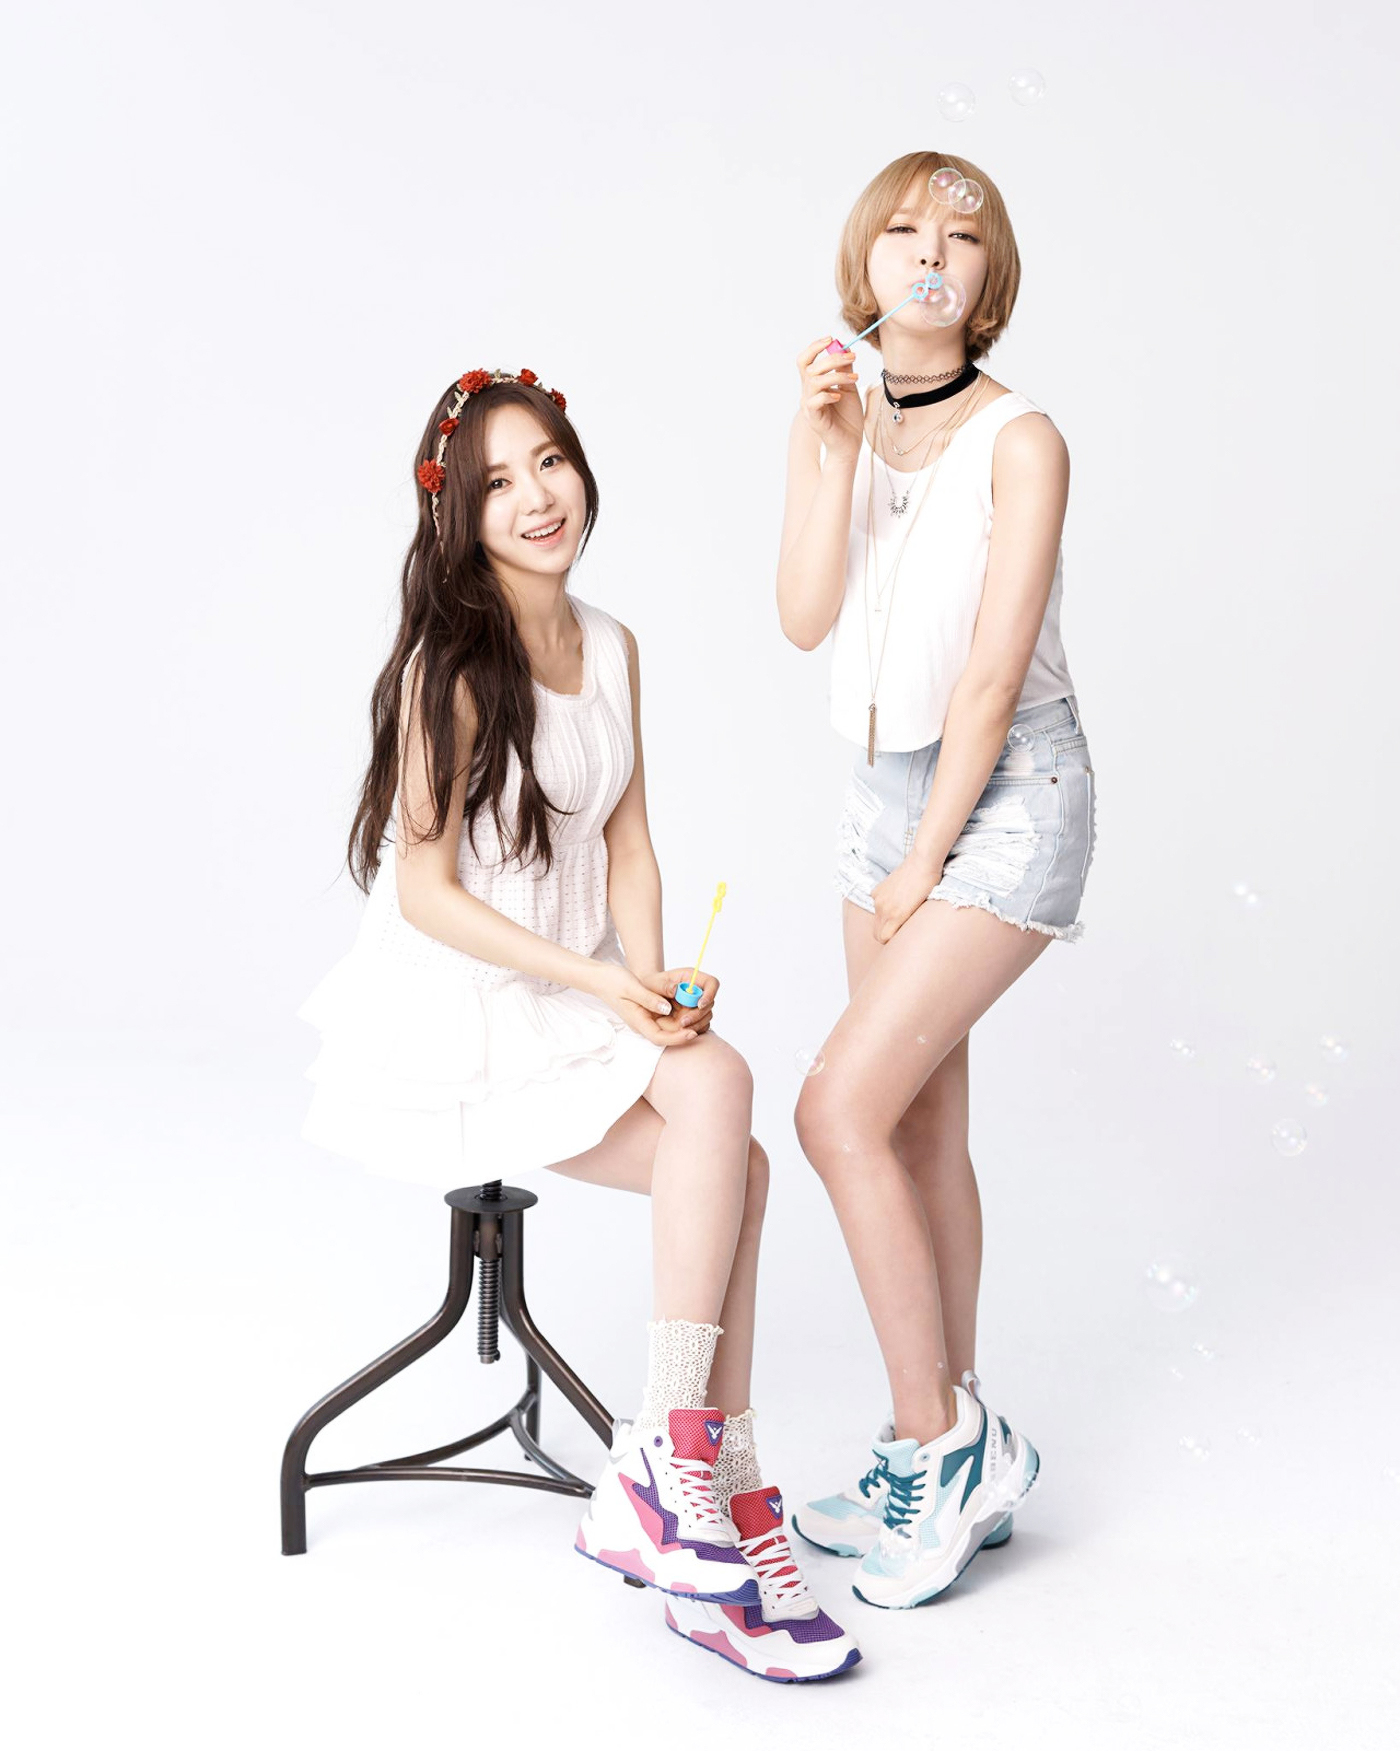 Aoa Ace Of Angels Image 21747 Asiachan Kpop Image Board